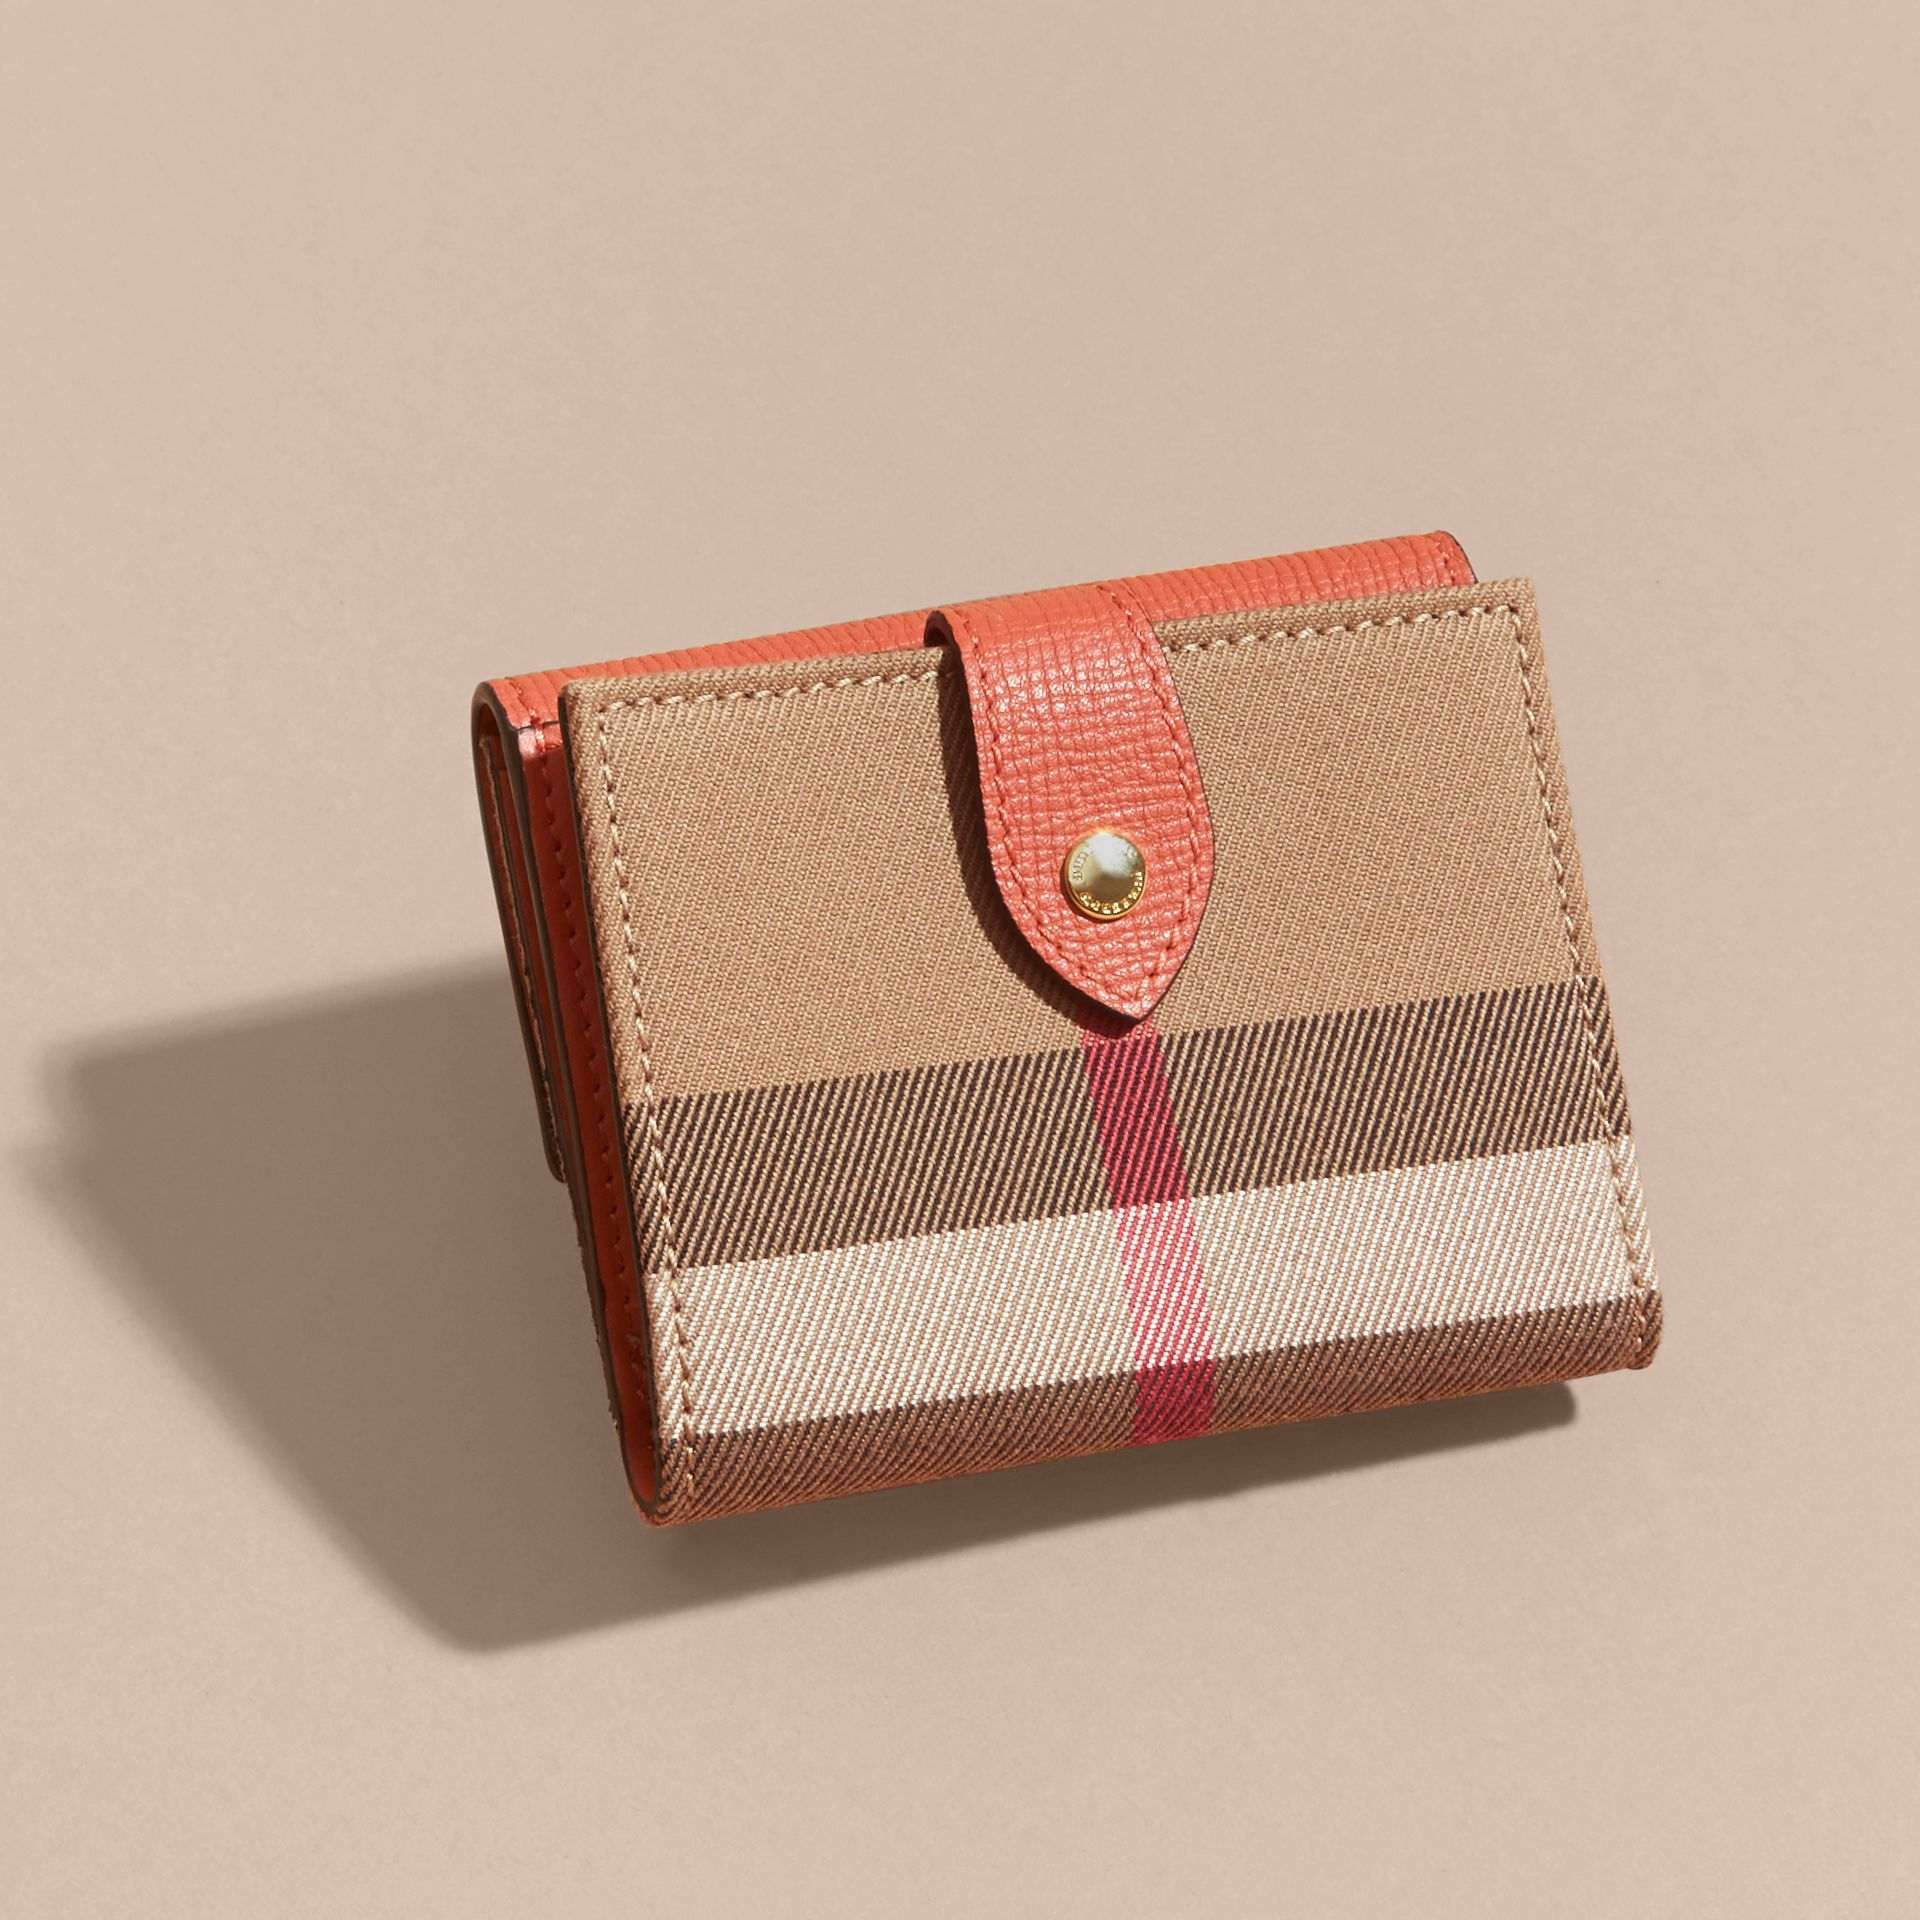 House Check and Leather Wallet in Cinnamon Red - Women | Burberry - gallery image 5